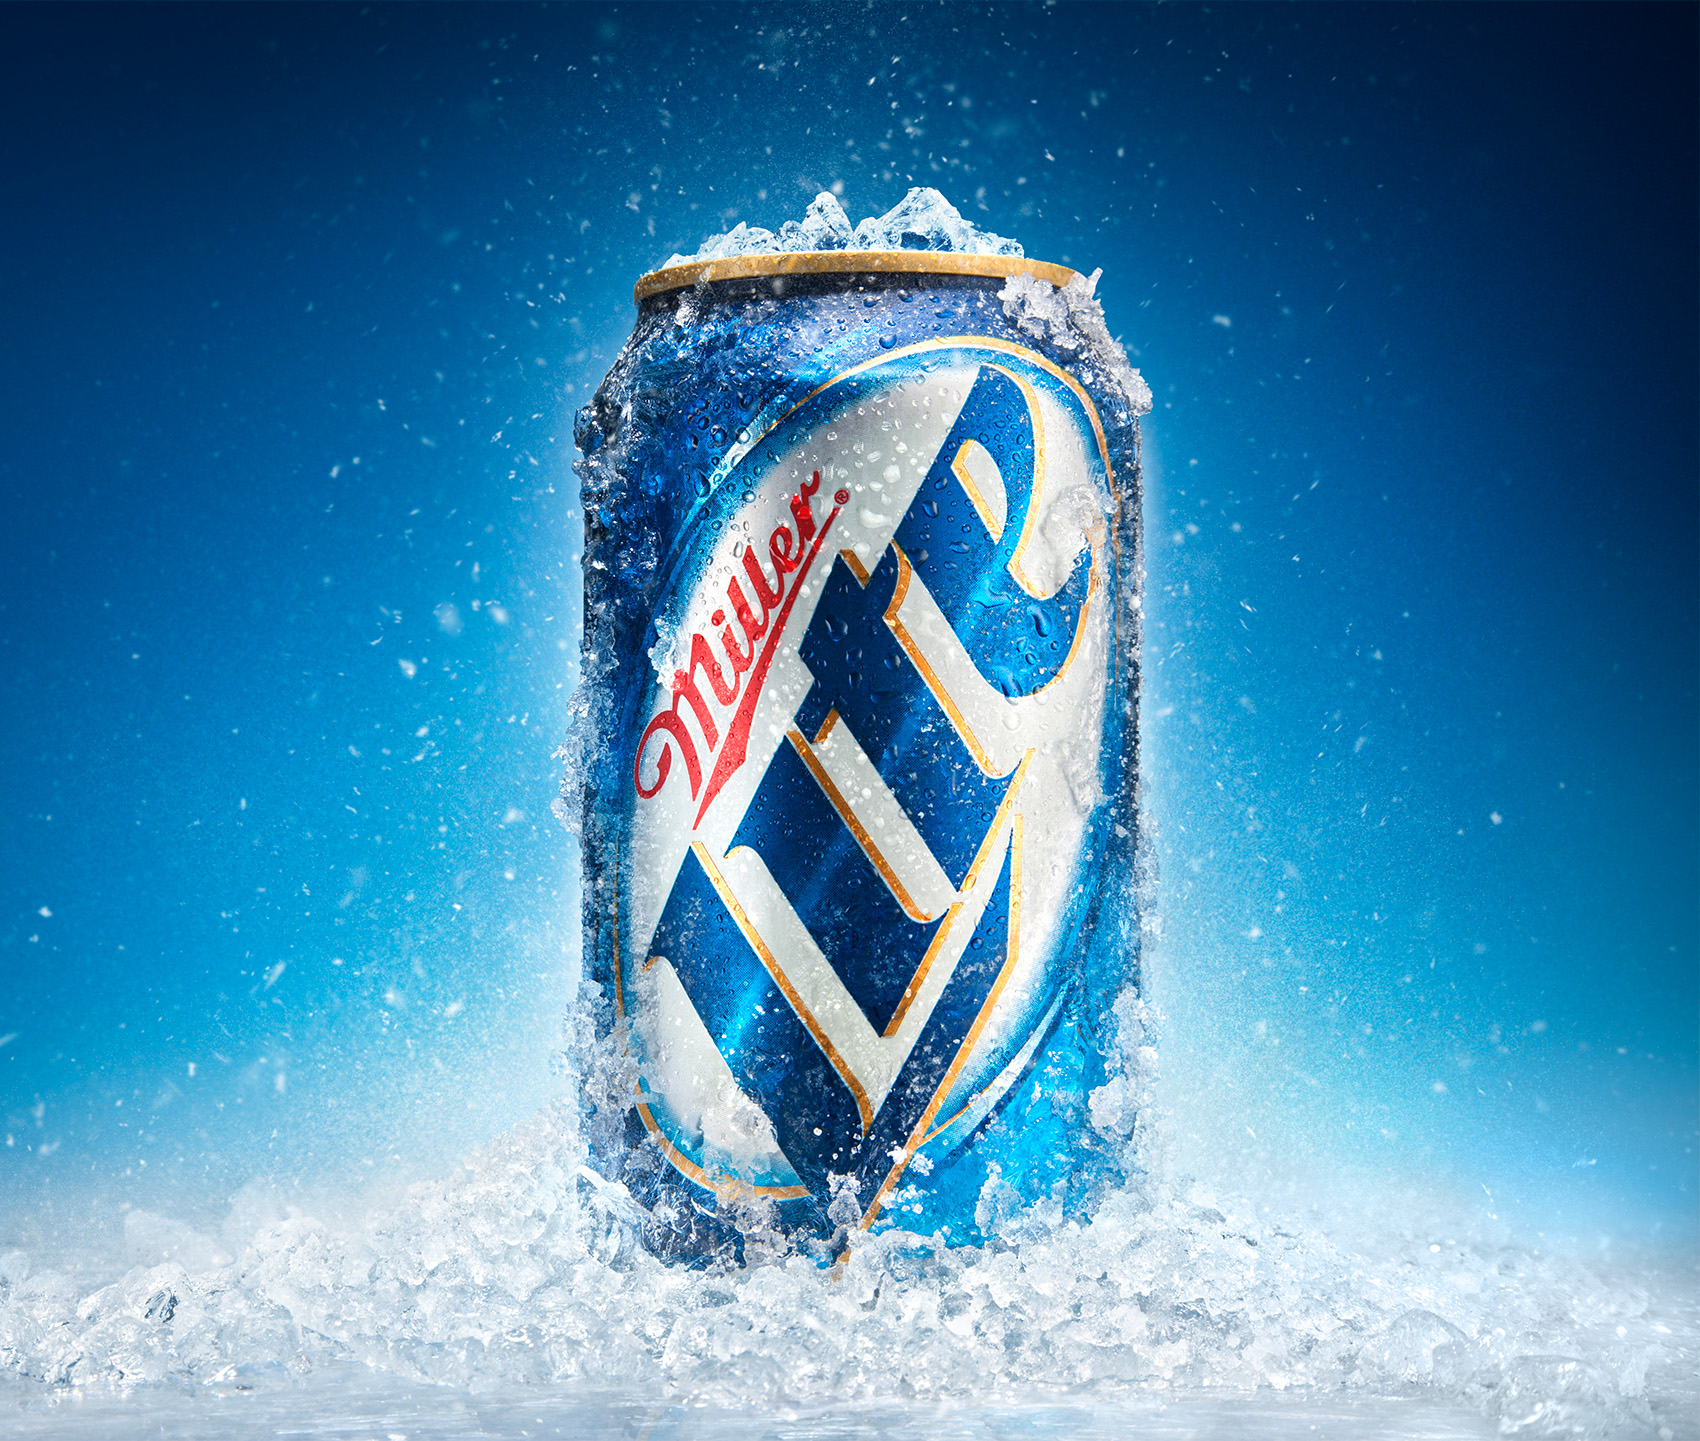 The Fall Bbc Wallpaper Miller Lite Looks For Ideas Beyond Tbwa Chiat Day L A